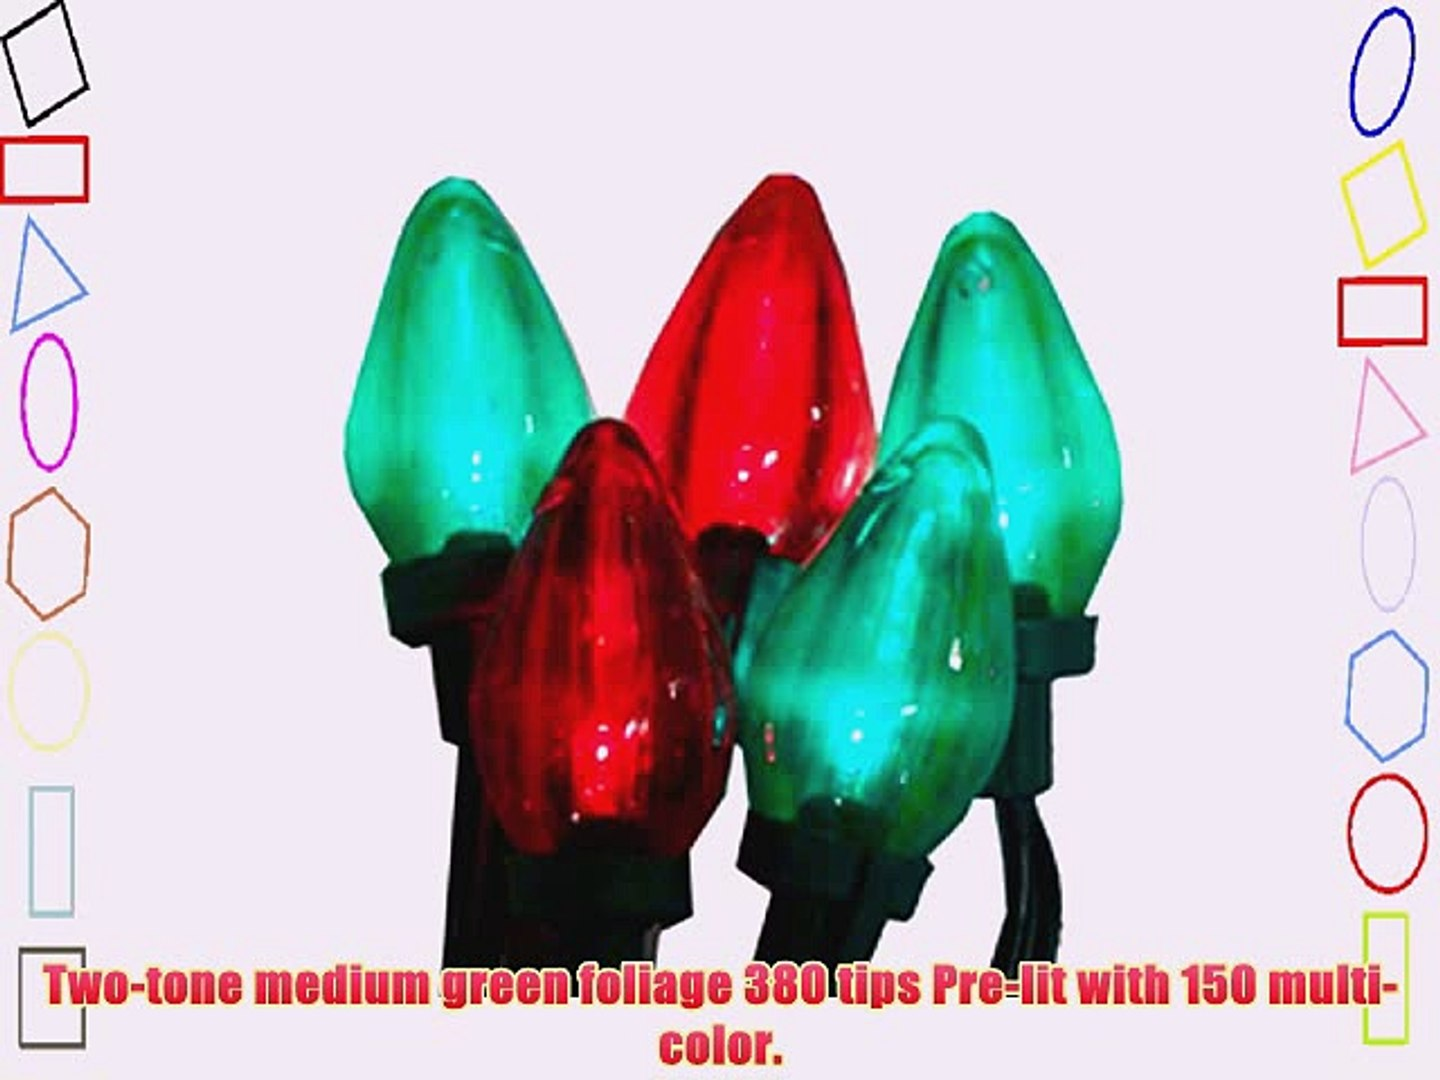 25 Transparent Red & Green LED Retro Style C7 Christmas Lights - Green Wire